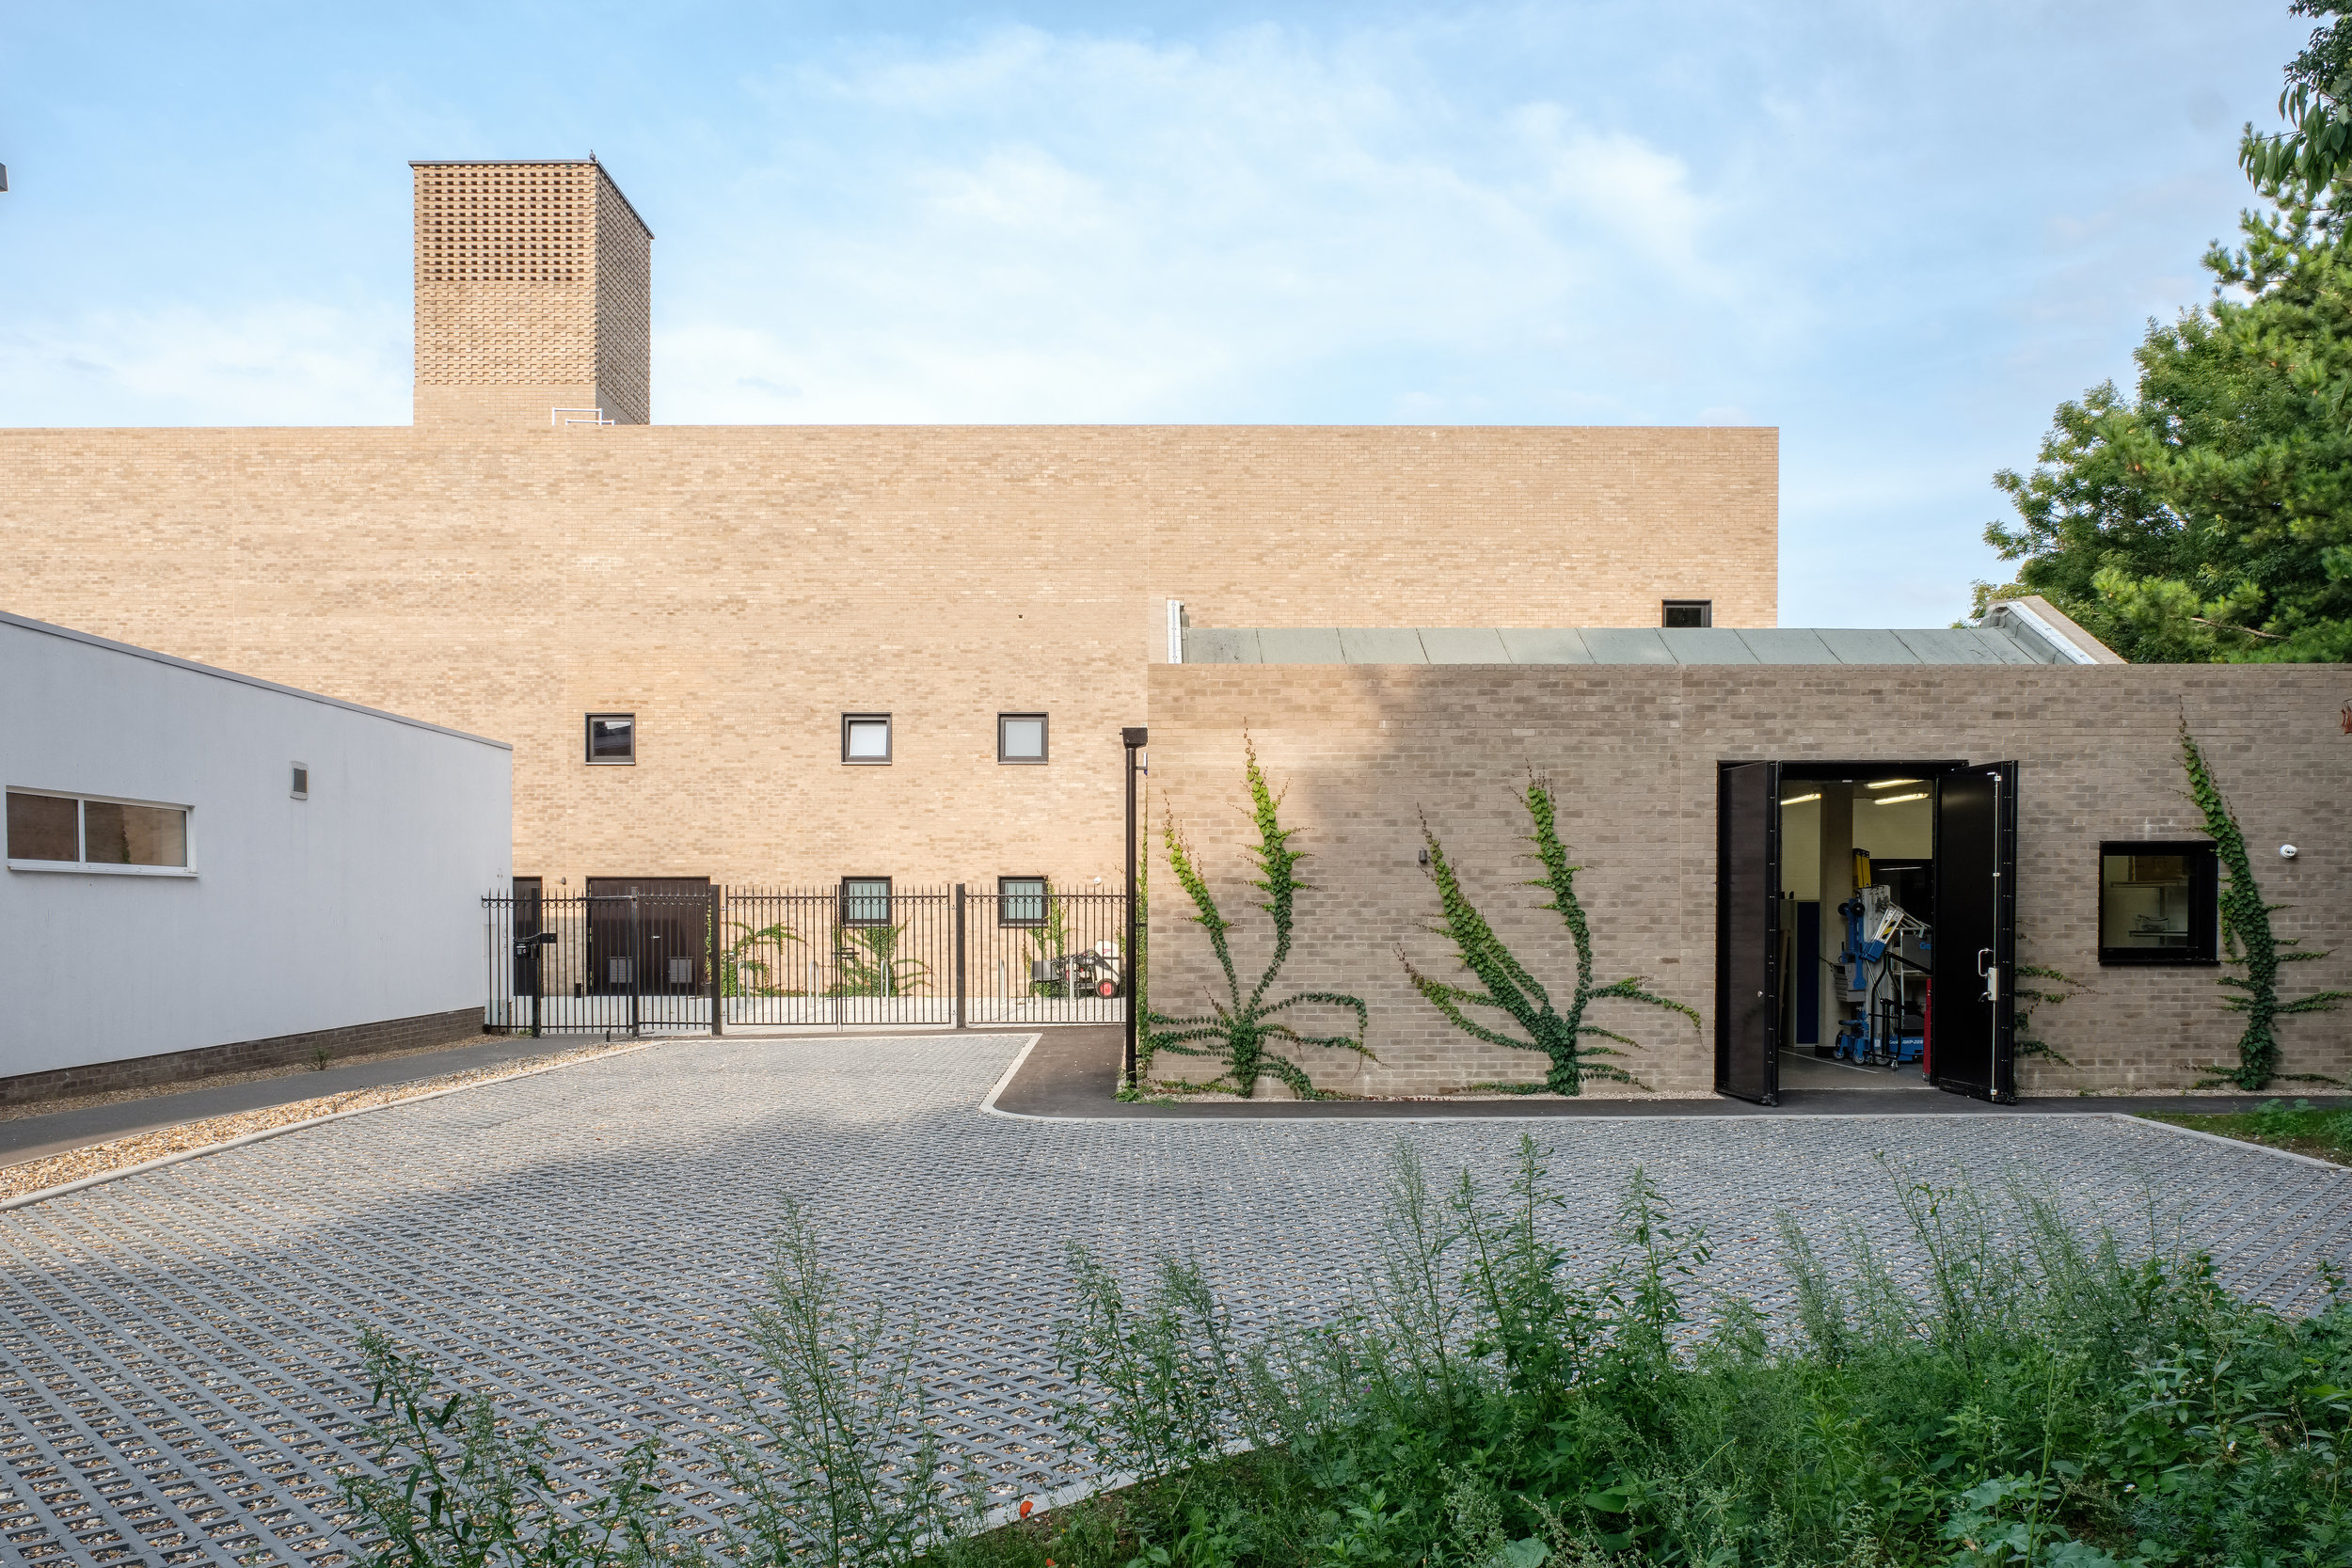 Fred+Howarth+Photography_Perse+Schol+Performing+Arts+Centre_27.jpg